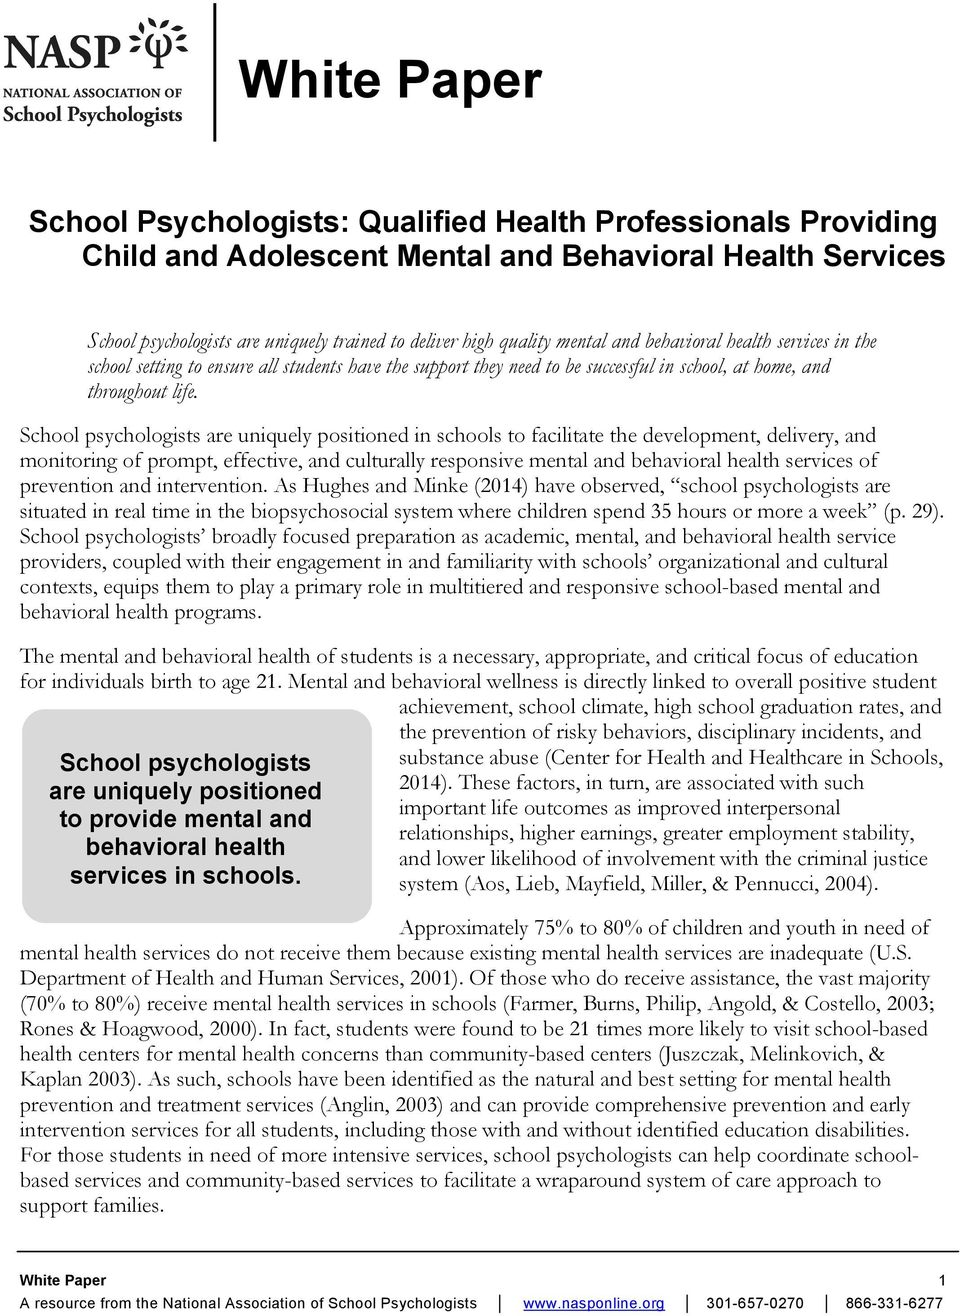 School psychologists are uniquely positioned in schools to facilitate the development, delivery, and monitoring of prompt, effective, and culturally responsive mental and behavioral health services